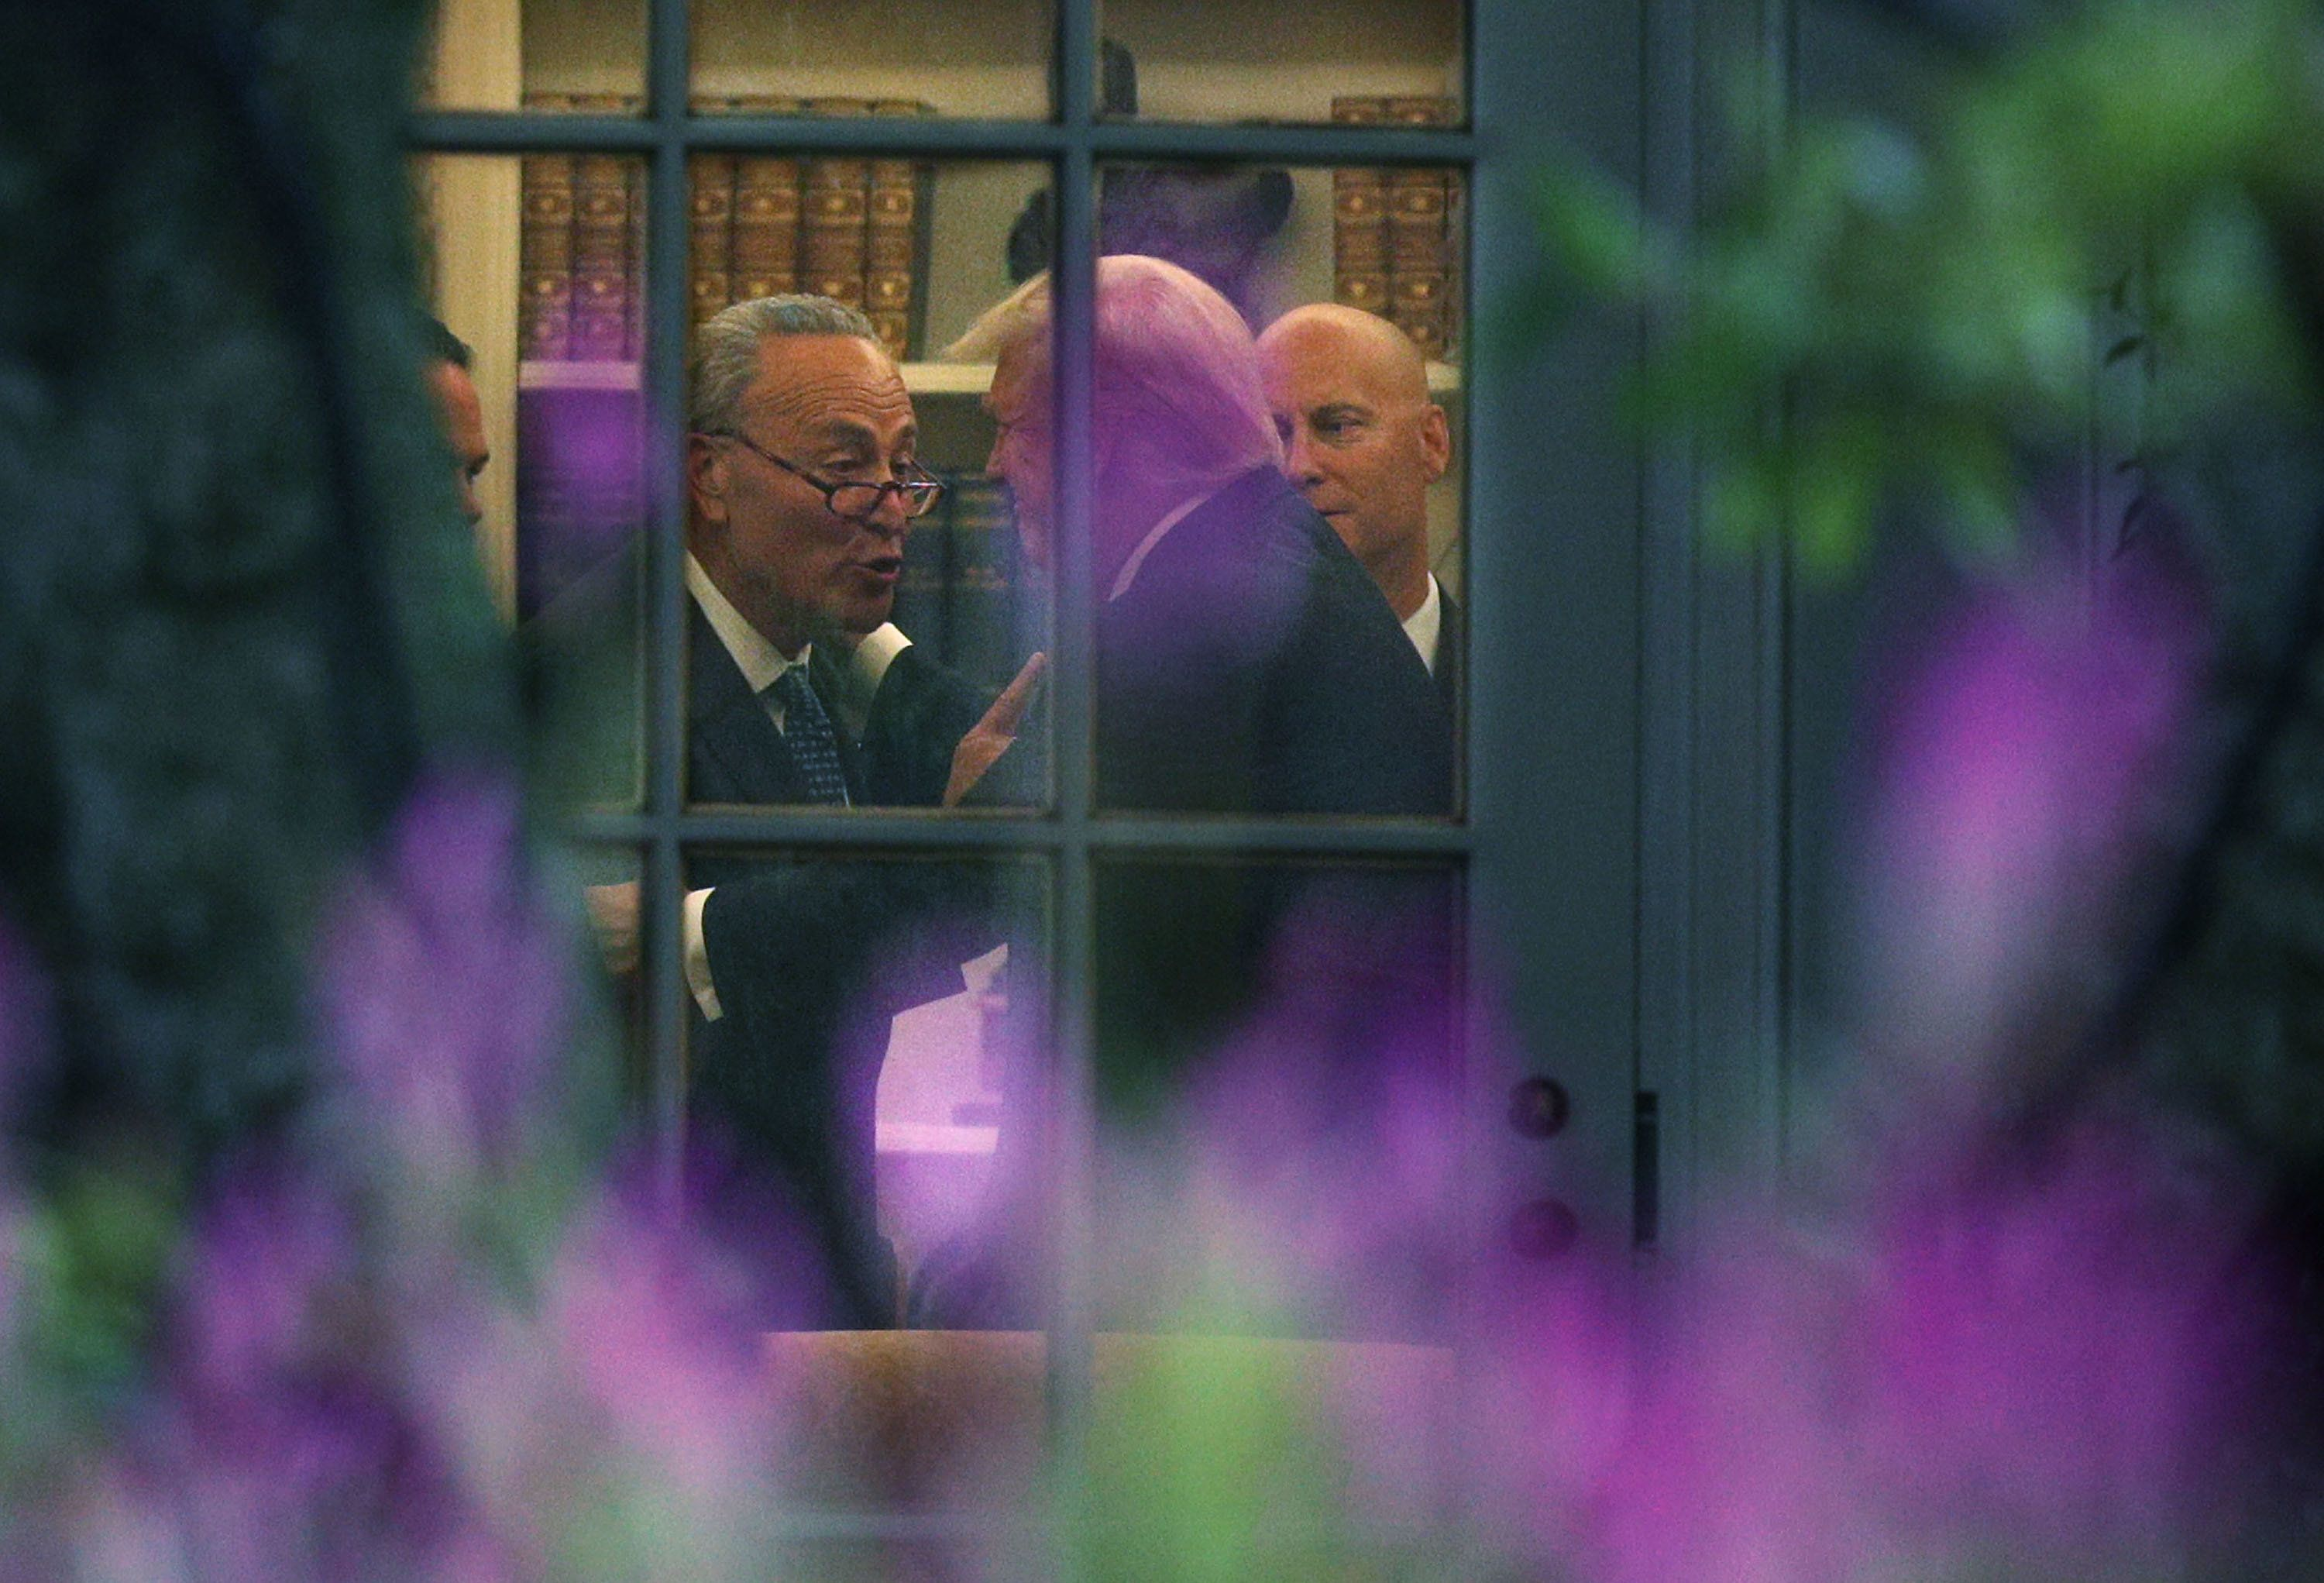 Senate Minority Leader Chuck Schumer (D-N.Y.) makes a point to President Donald Trump in the Oval Office on Wednesday.&n